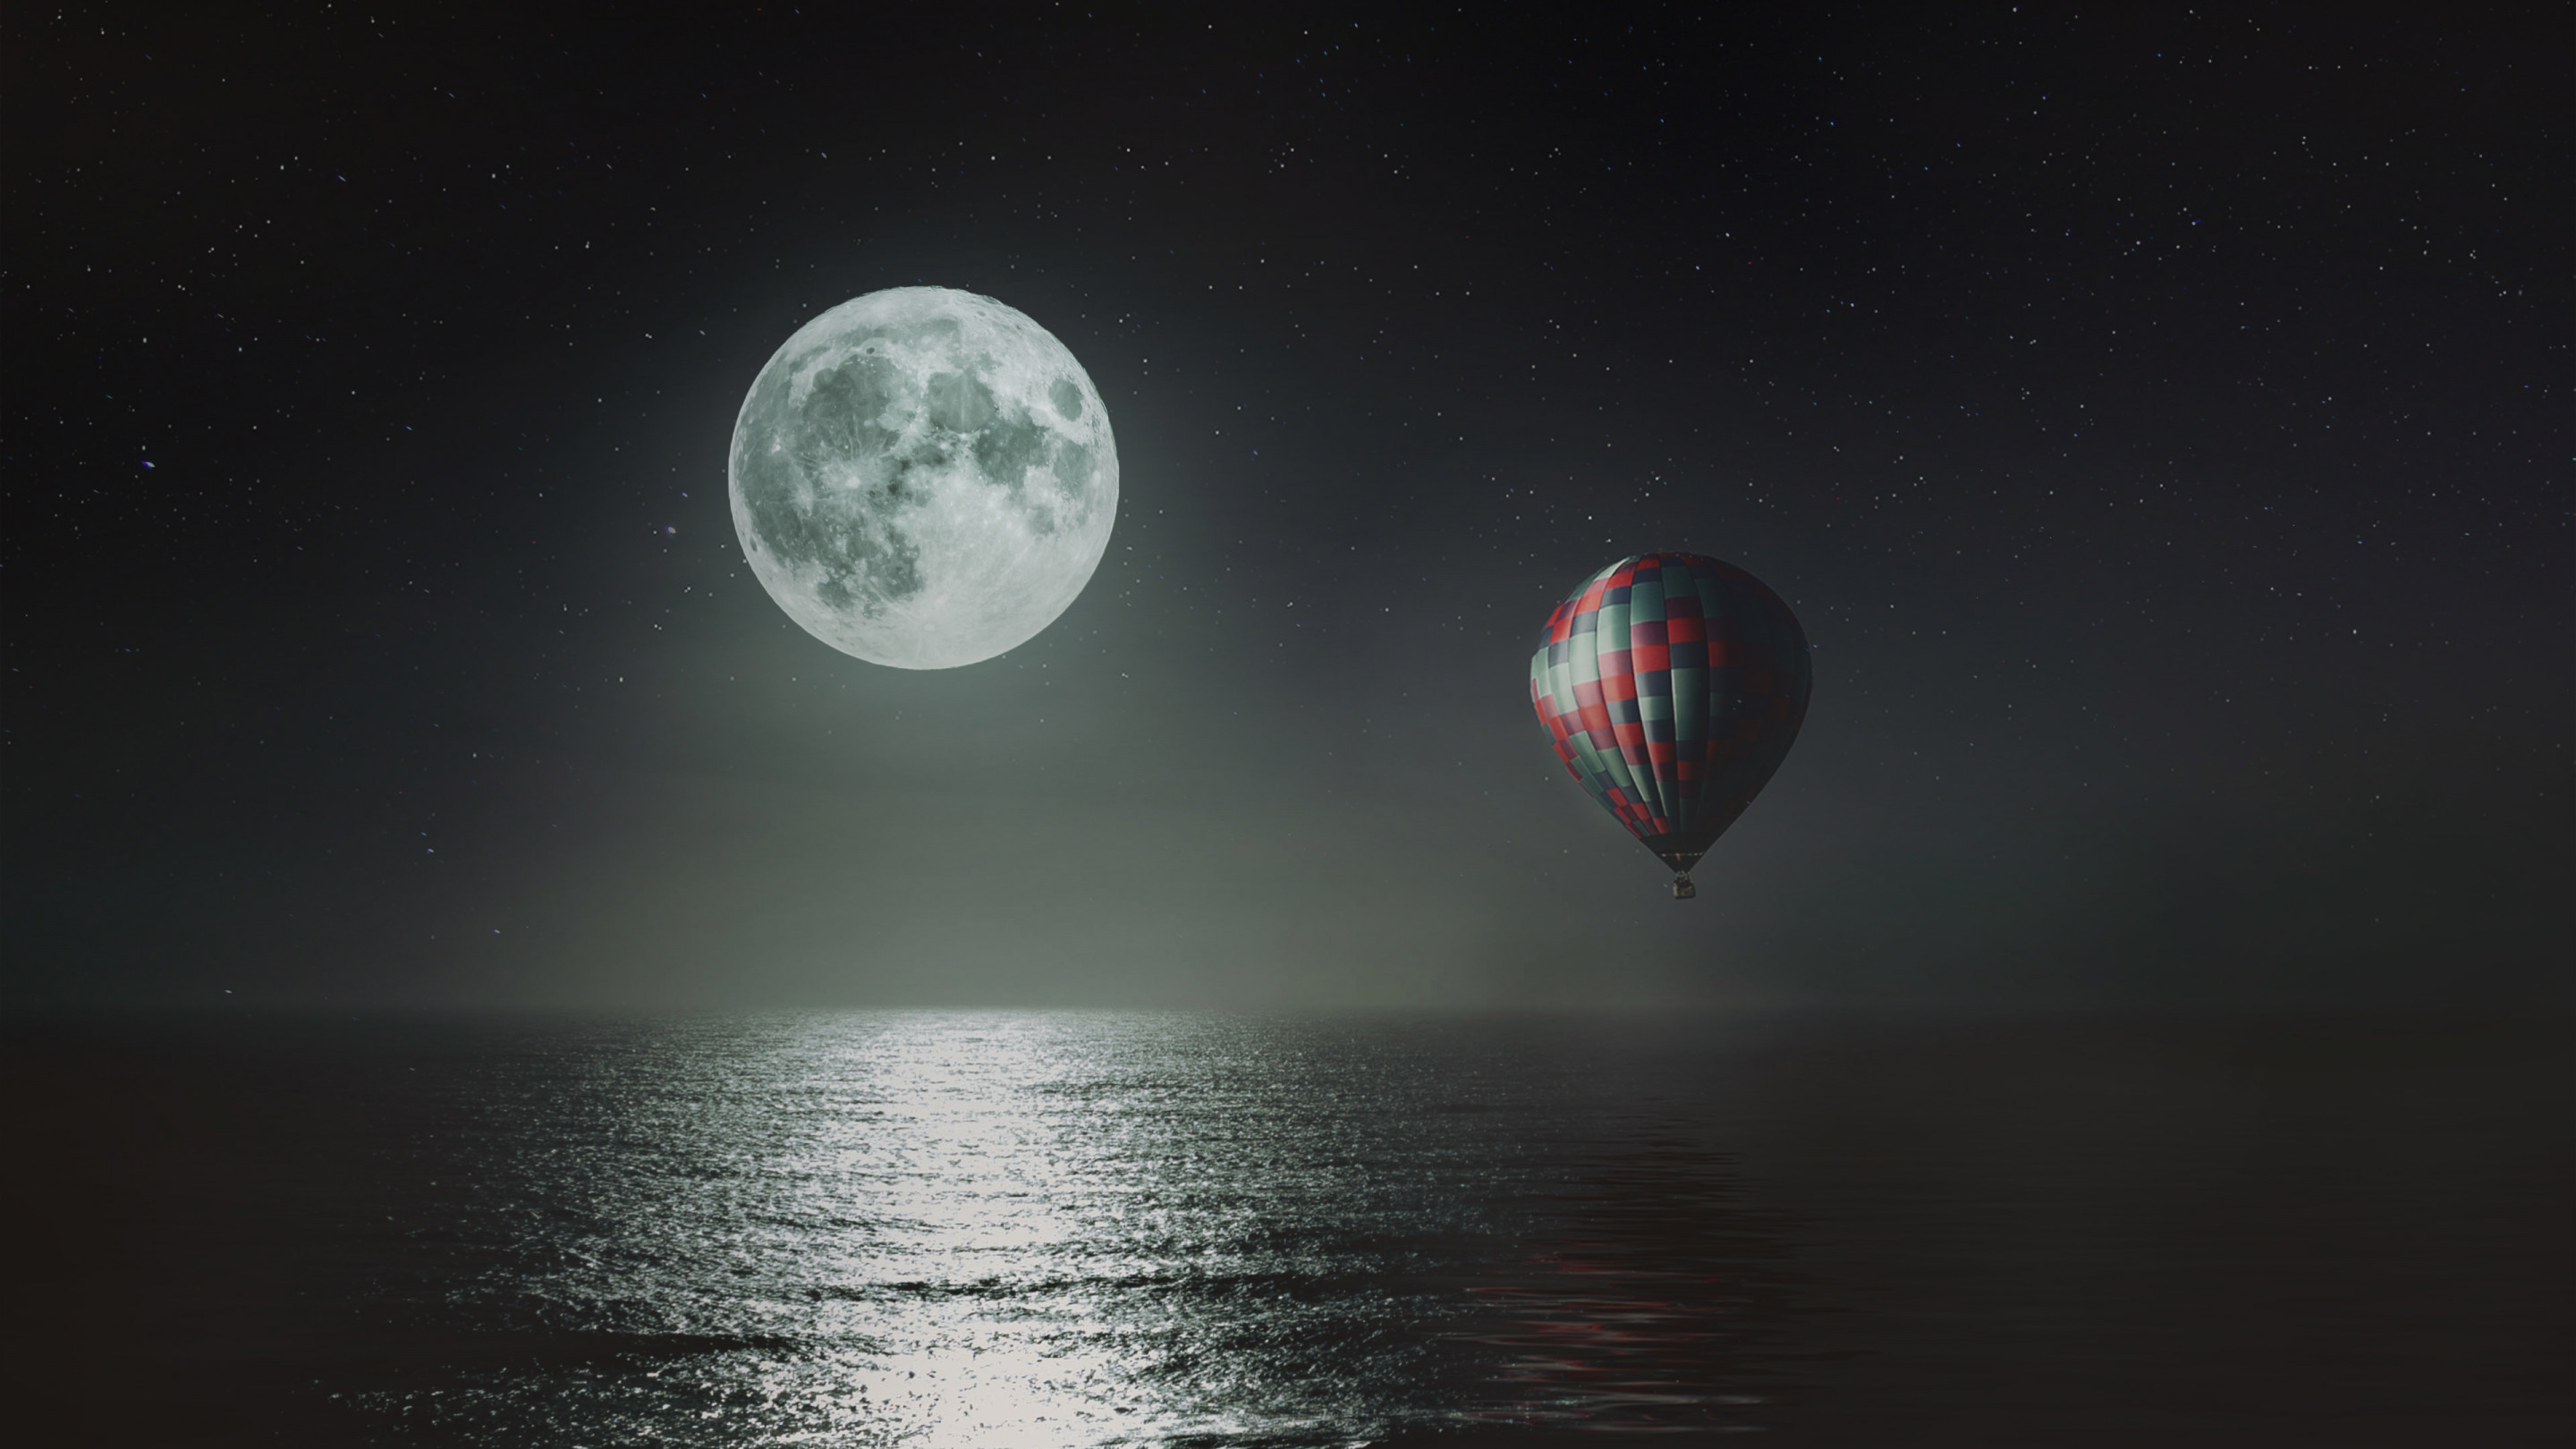 Hot air balloon over the night sky wallpaper 2880x1620